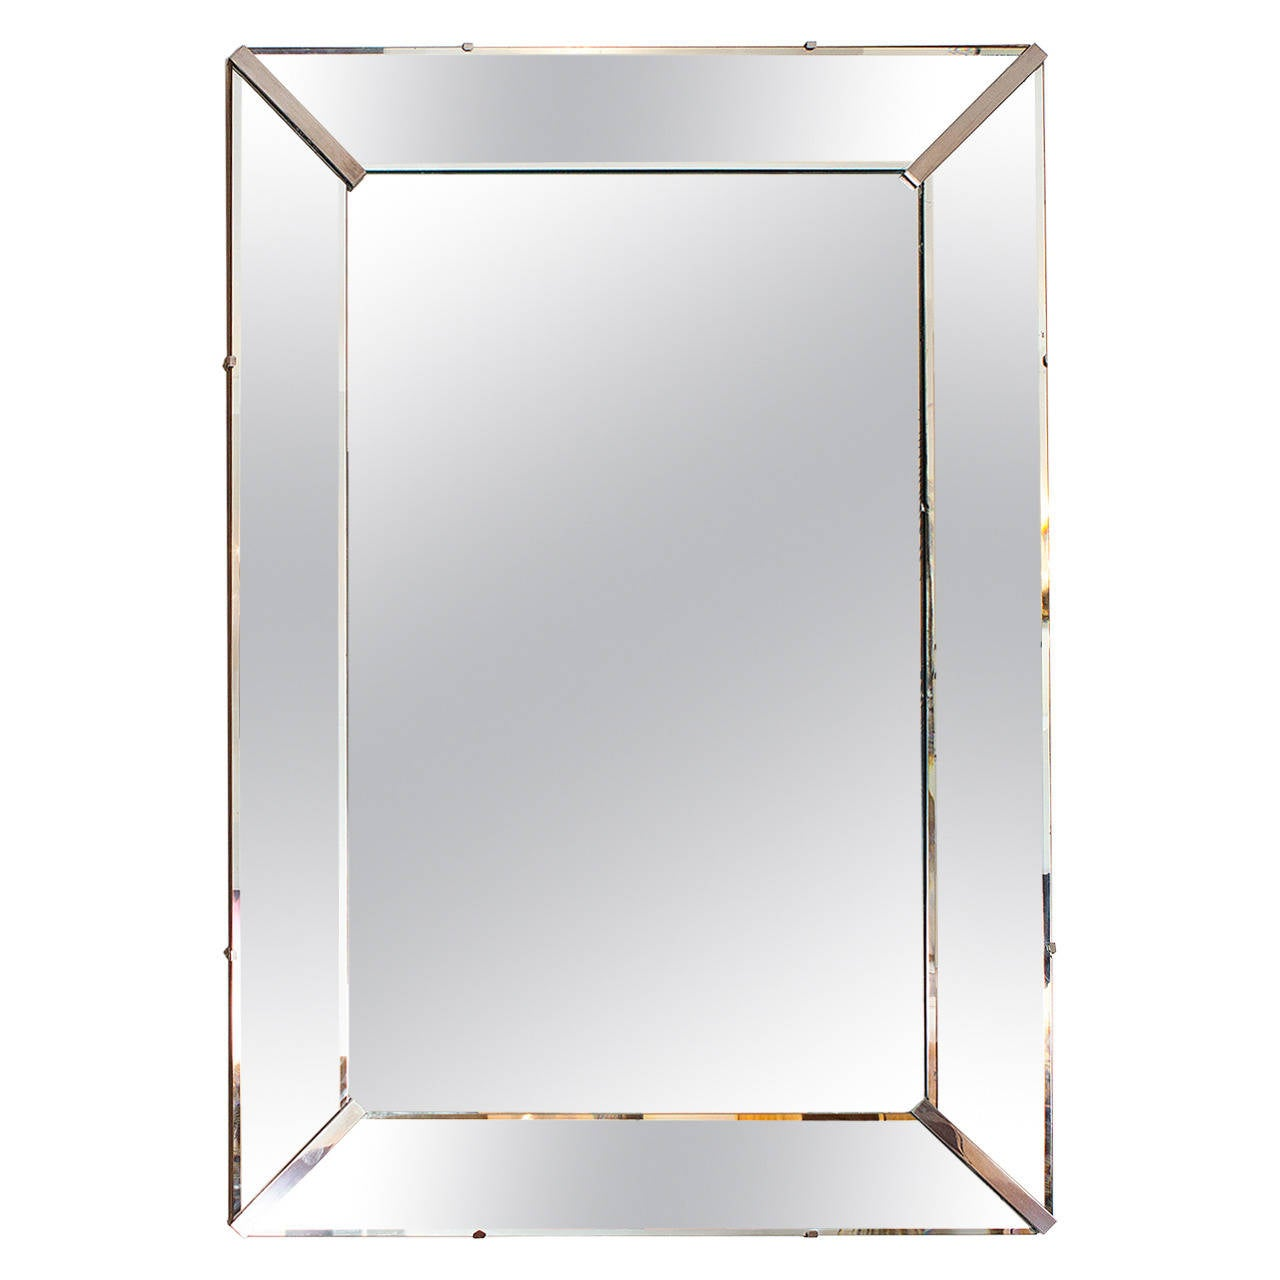 Elegant Art Deco Wall Mirror, France circa 1940 at 1stdibs